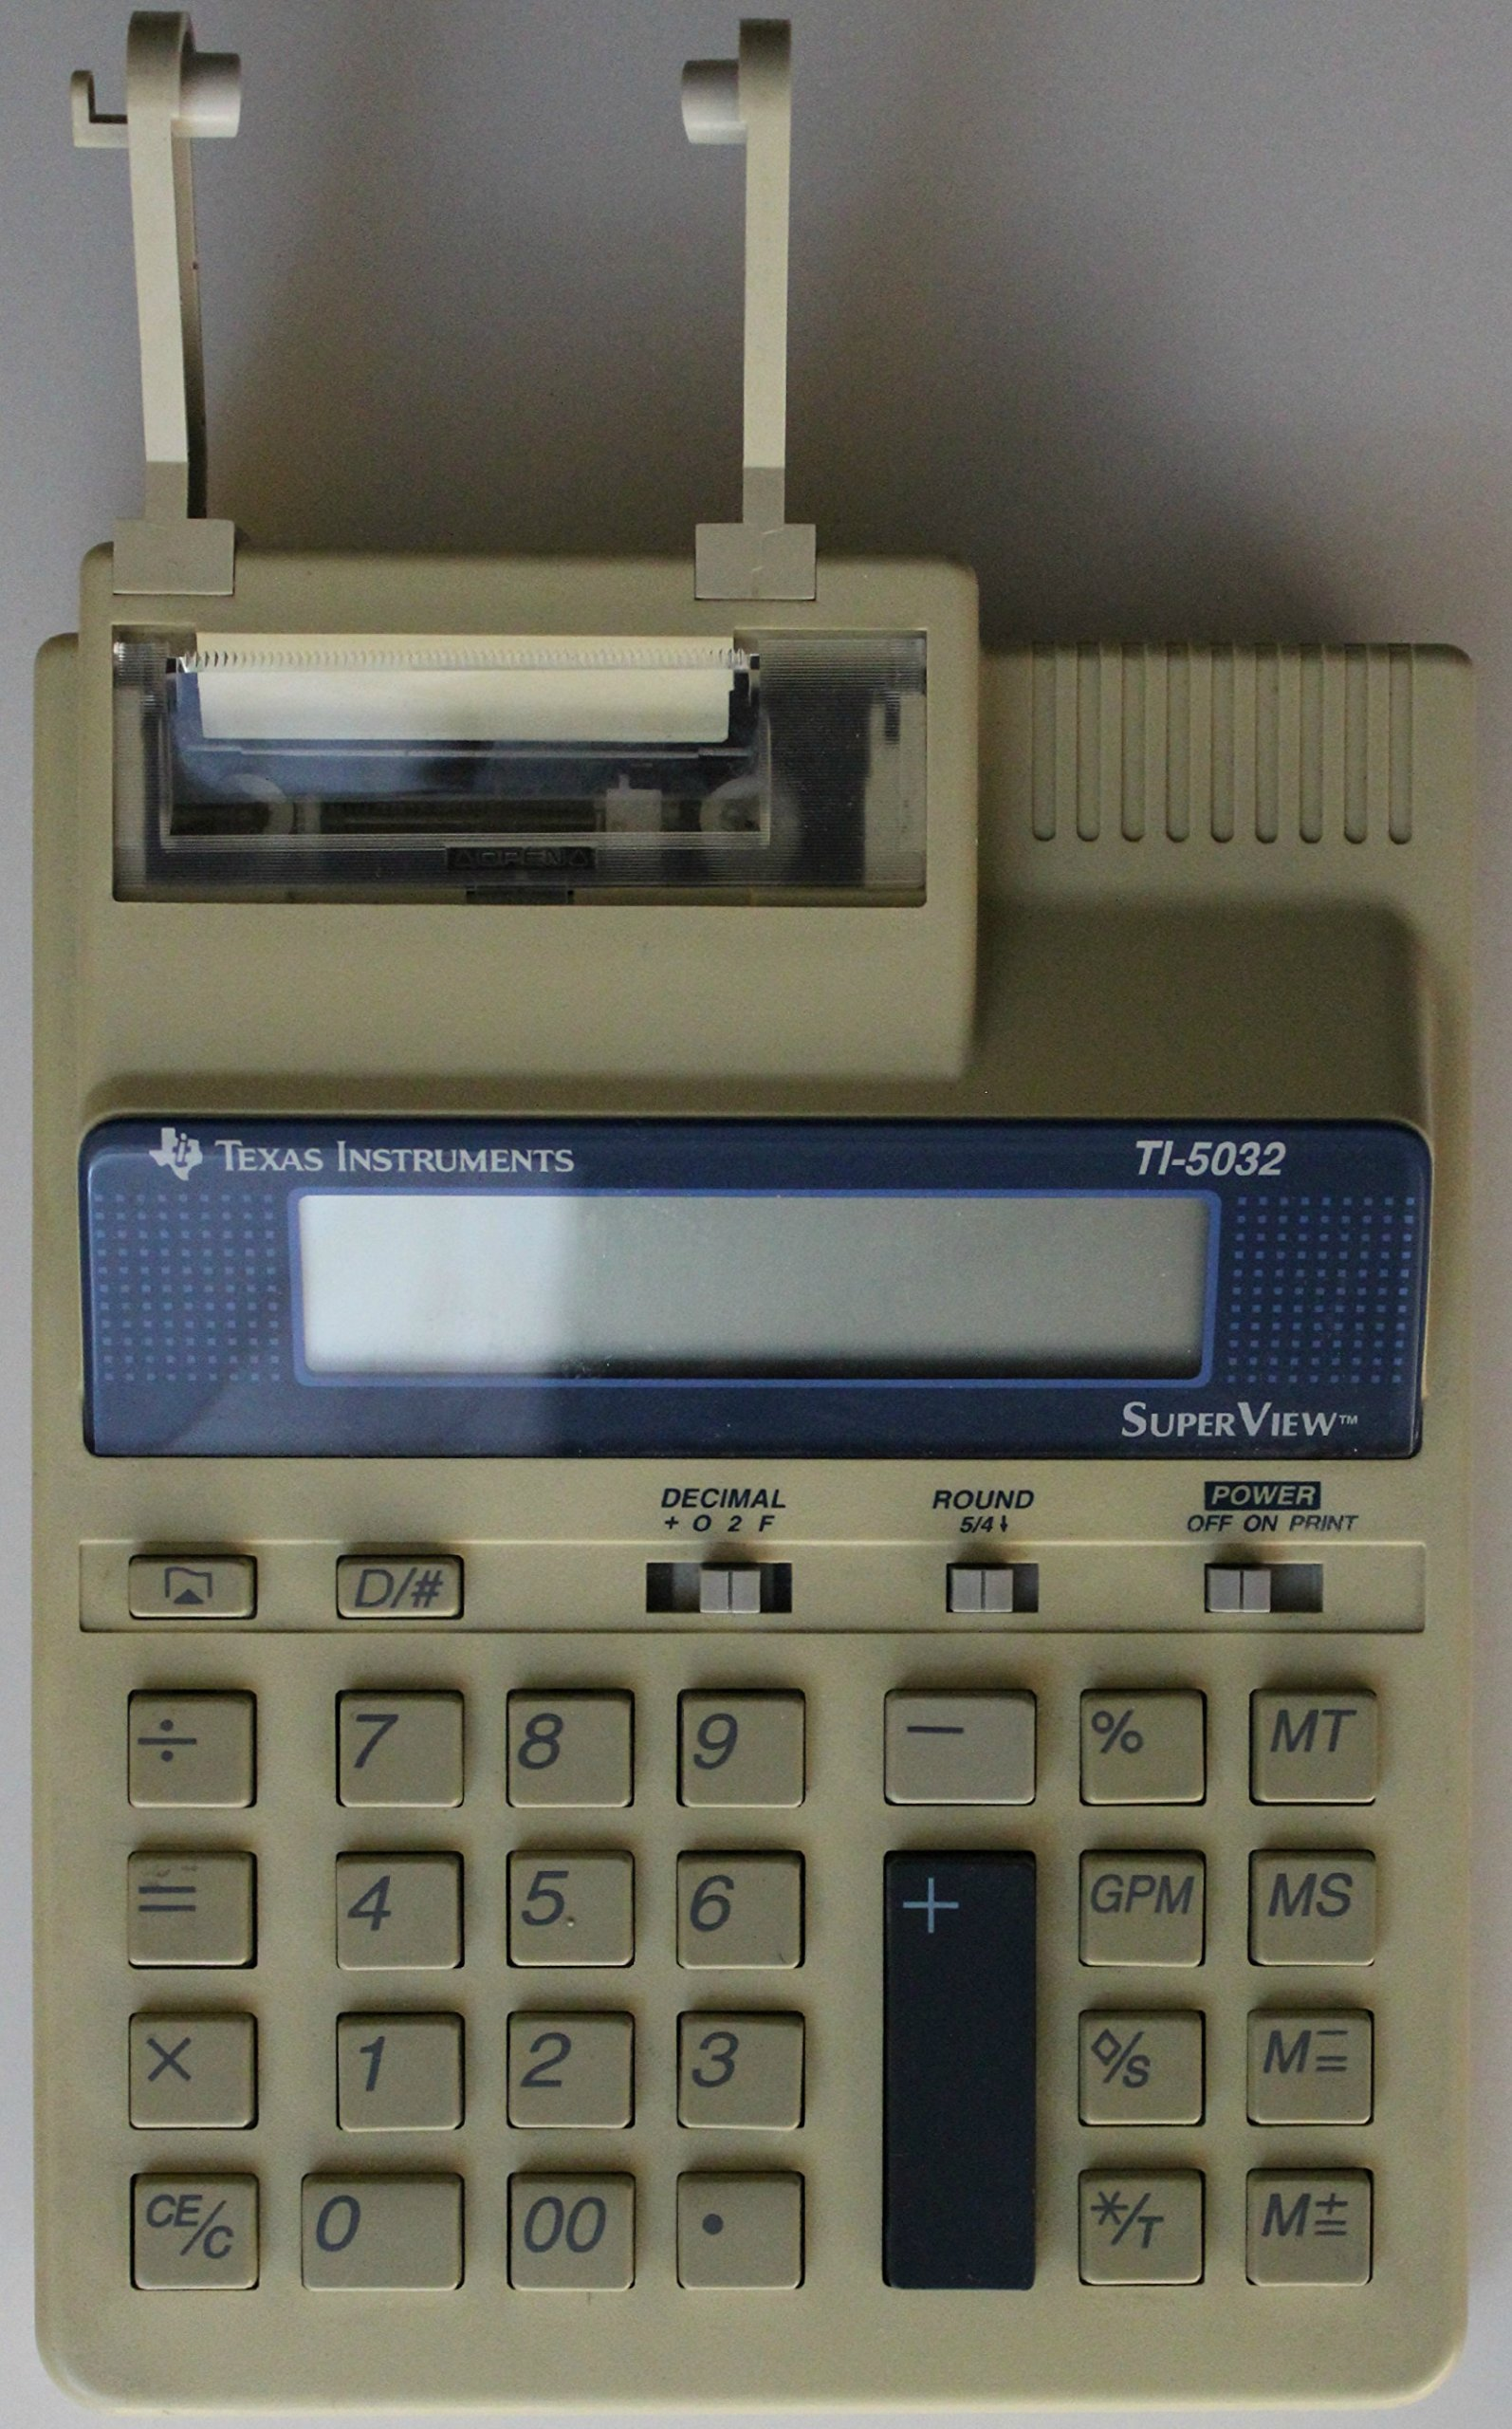 Texas Instruments TI-5032 Compact Printing Calculator